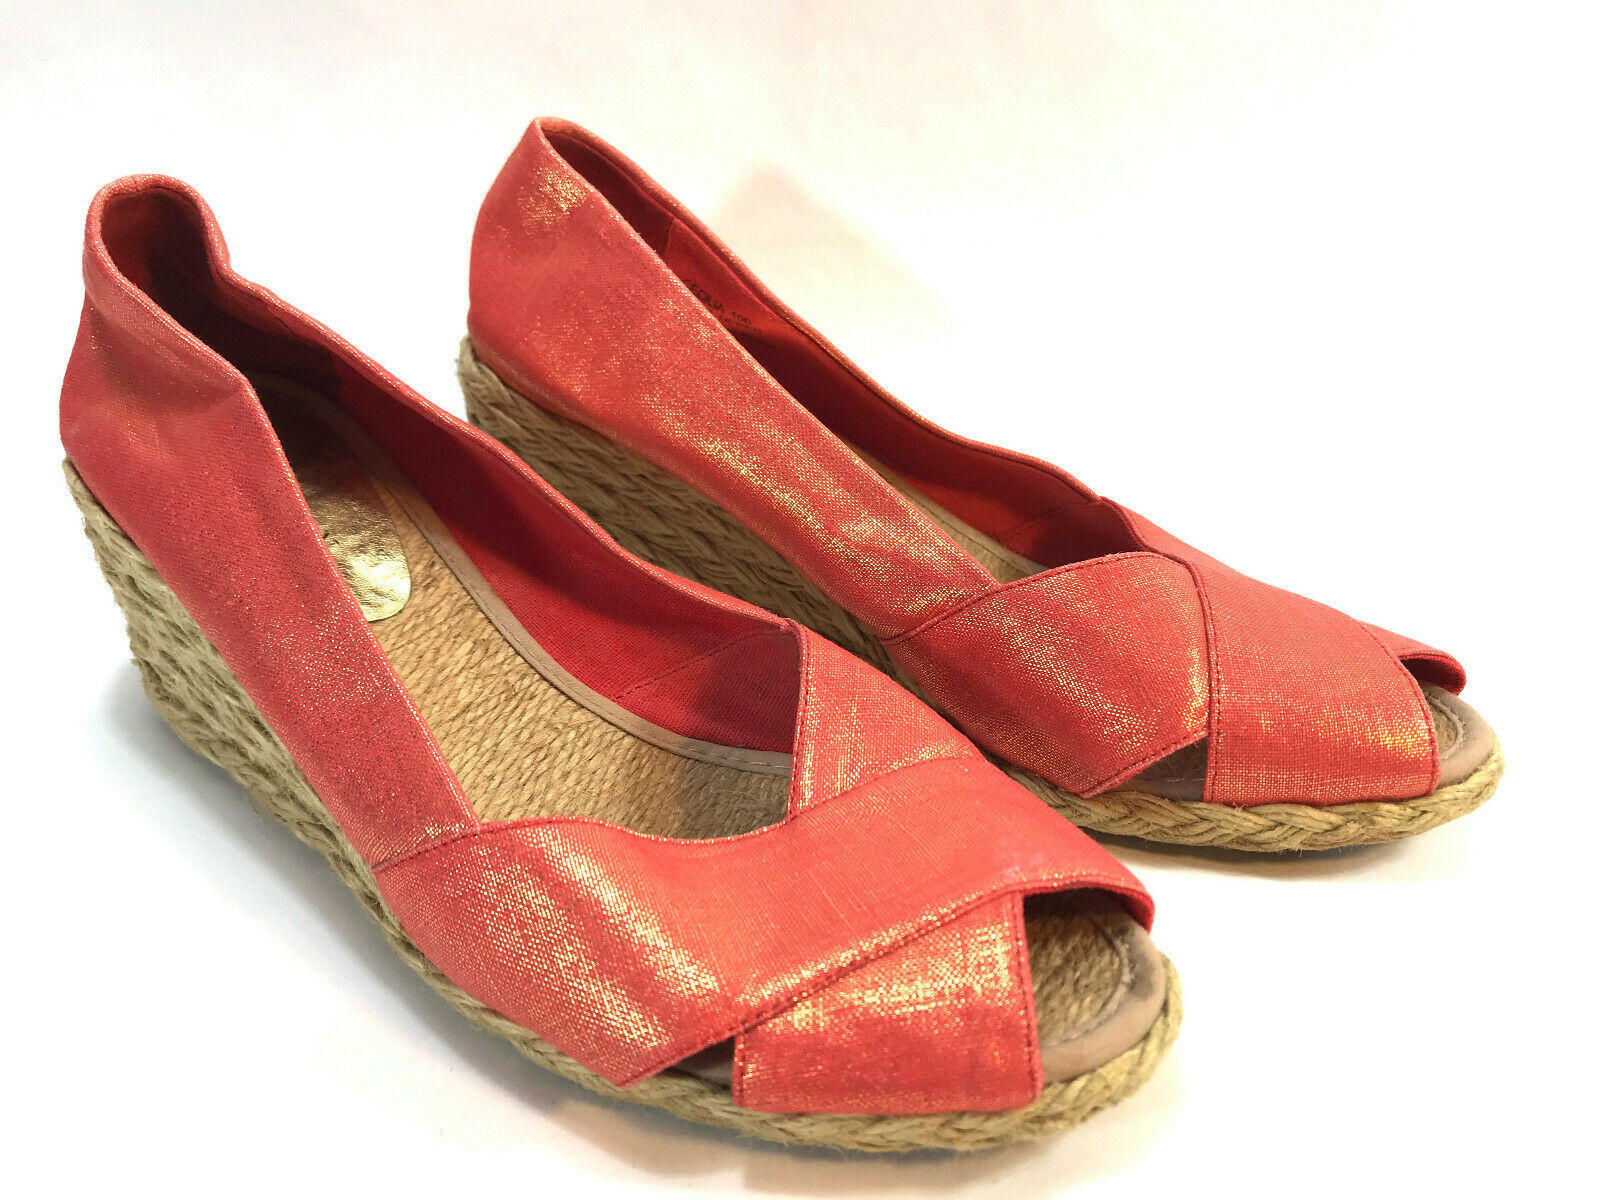 RALPH LAUREN red metallic linen espadrille wedge peep toe pumps 10 FREE SHIP! - $34.60